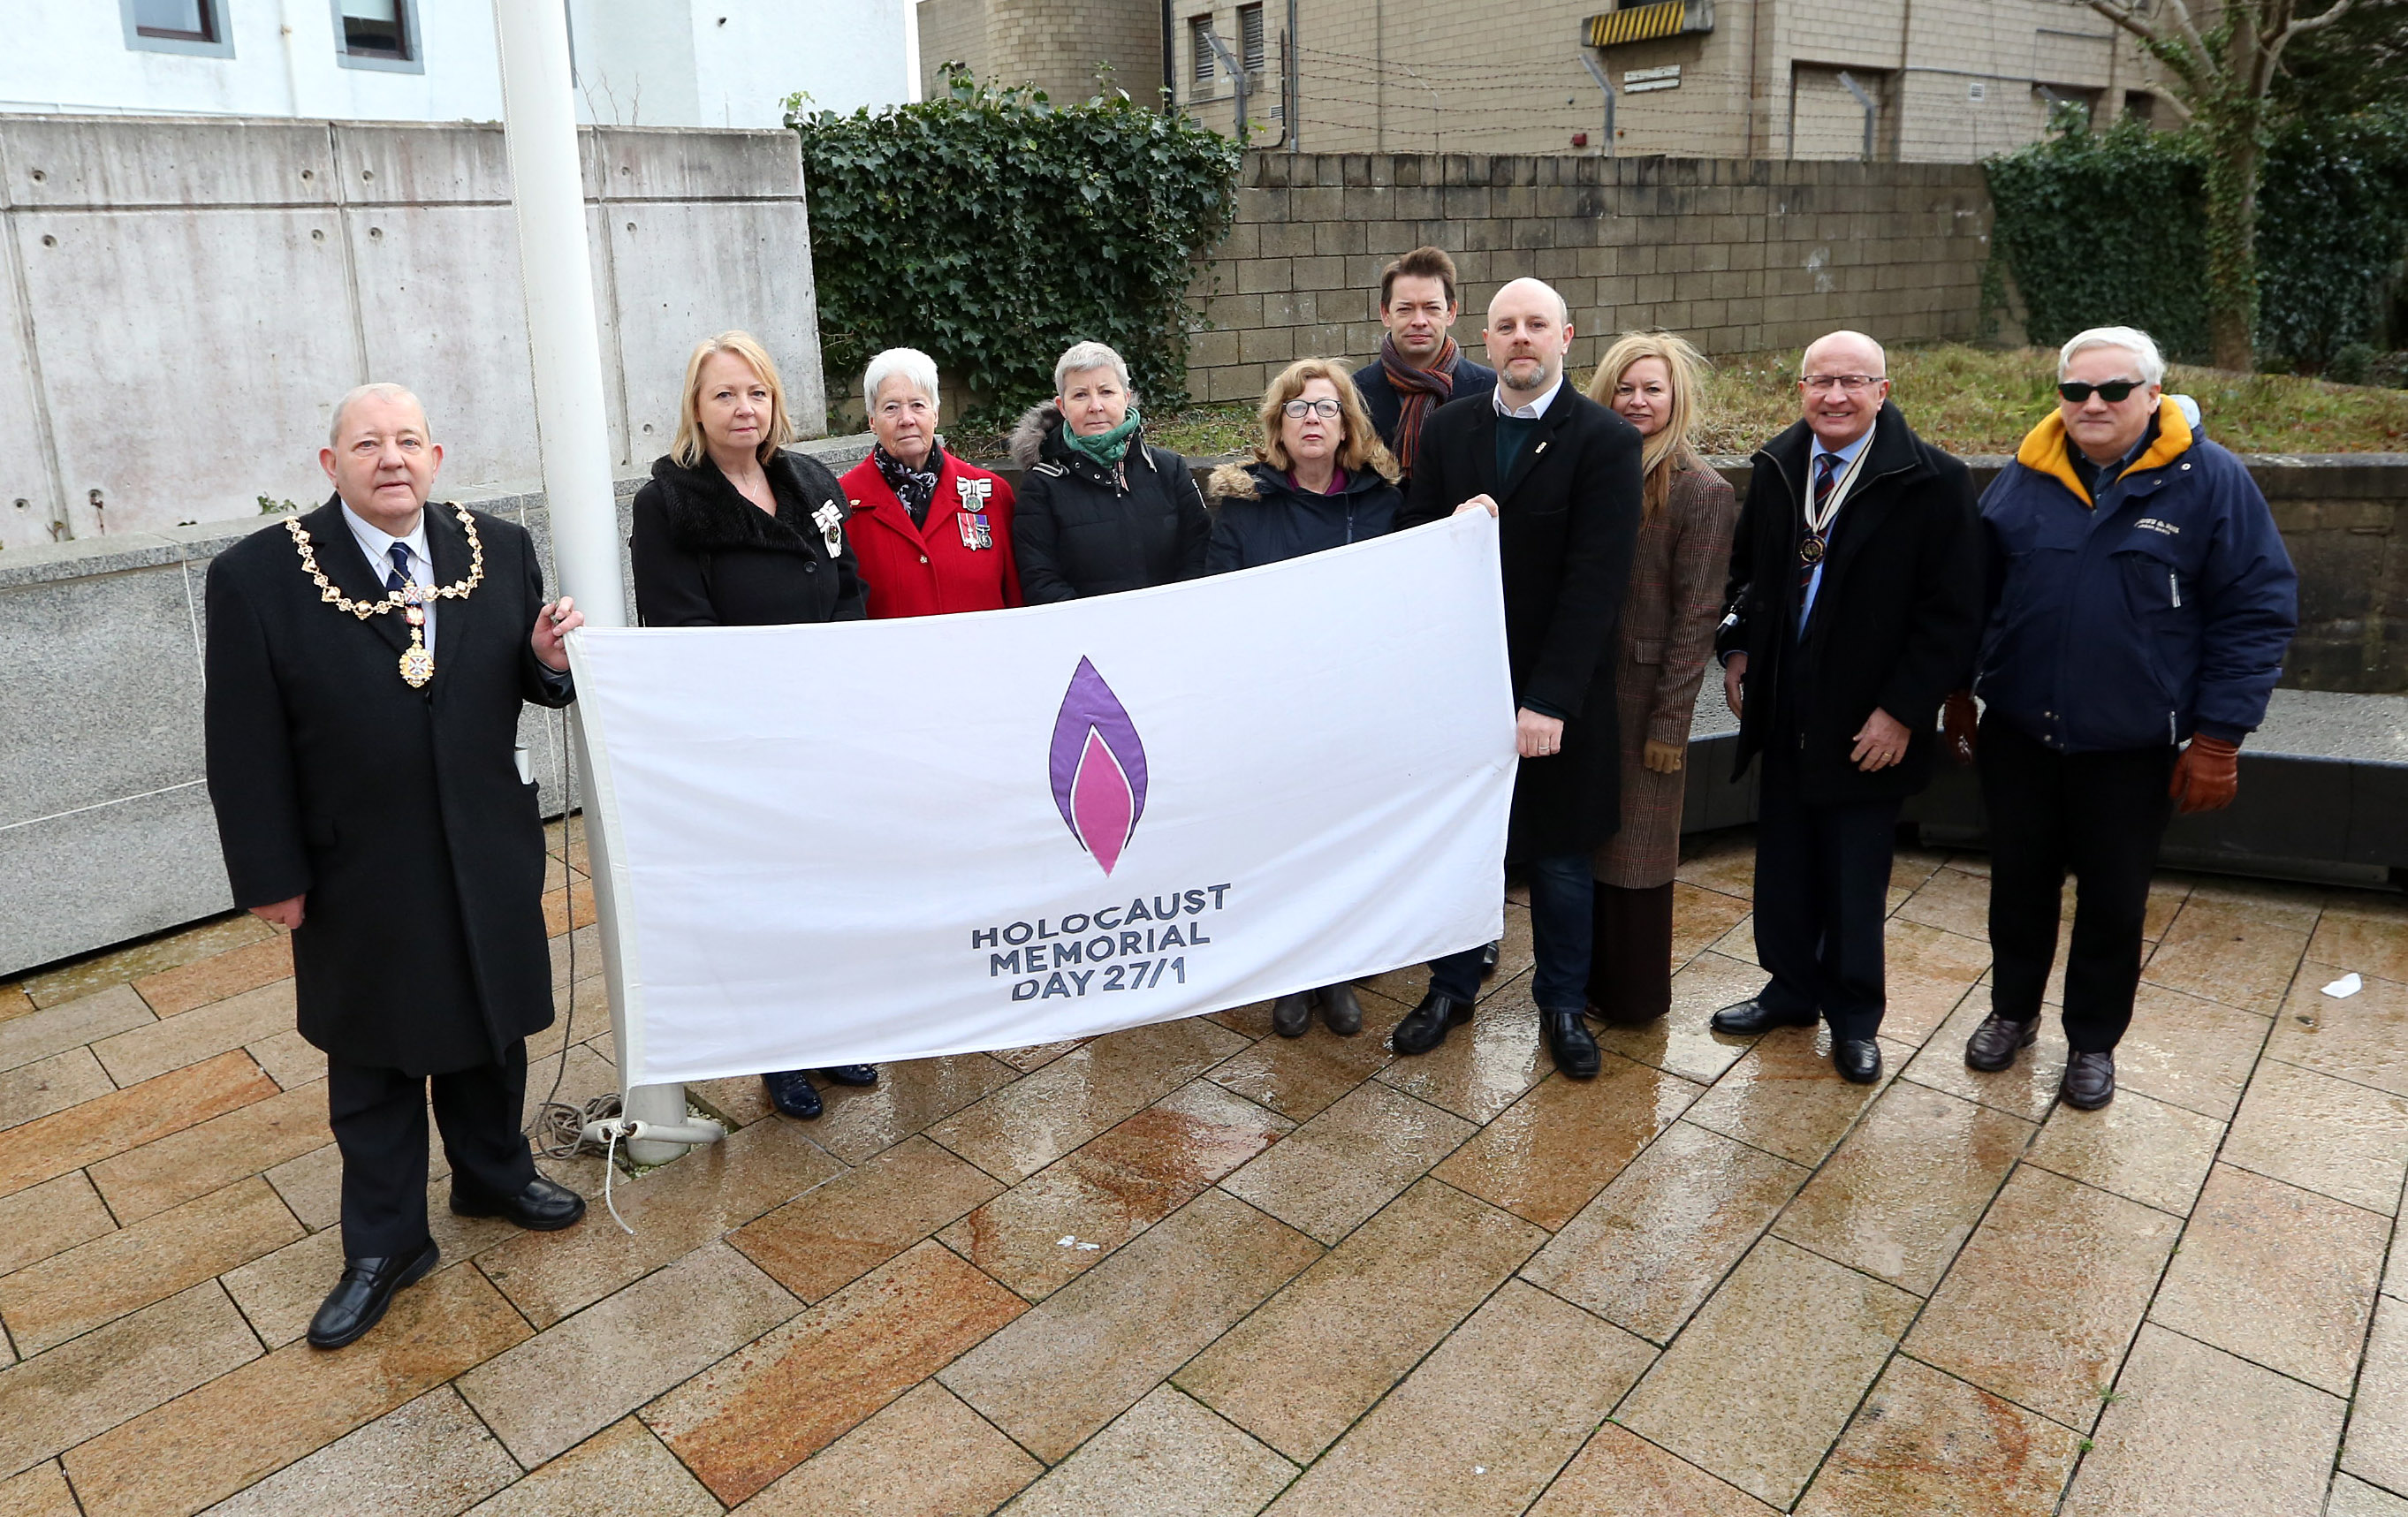 Holocaust Memorial Day flag (27 January) - Provost William Hendrie raised the Holocaust Memorial flag at Solidarity Plaza in Clydebank as part of a special ceremony on Monday